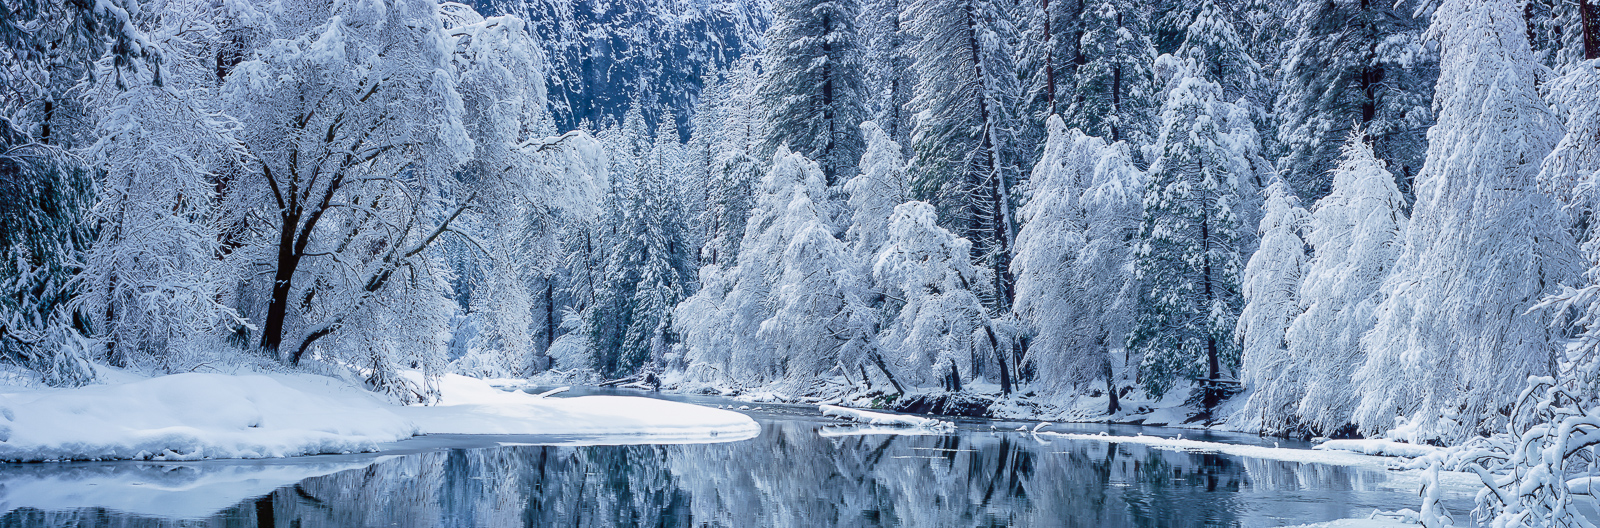 Winter at Merced,Yosemite National Park, Merced River, snow, photo